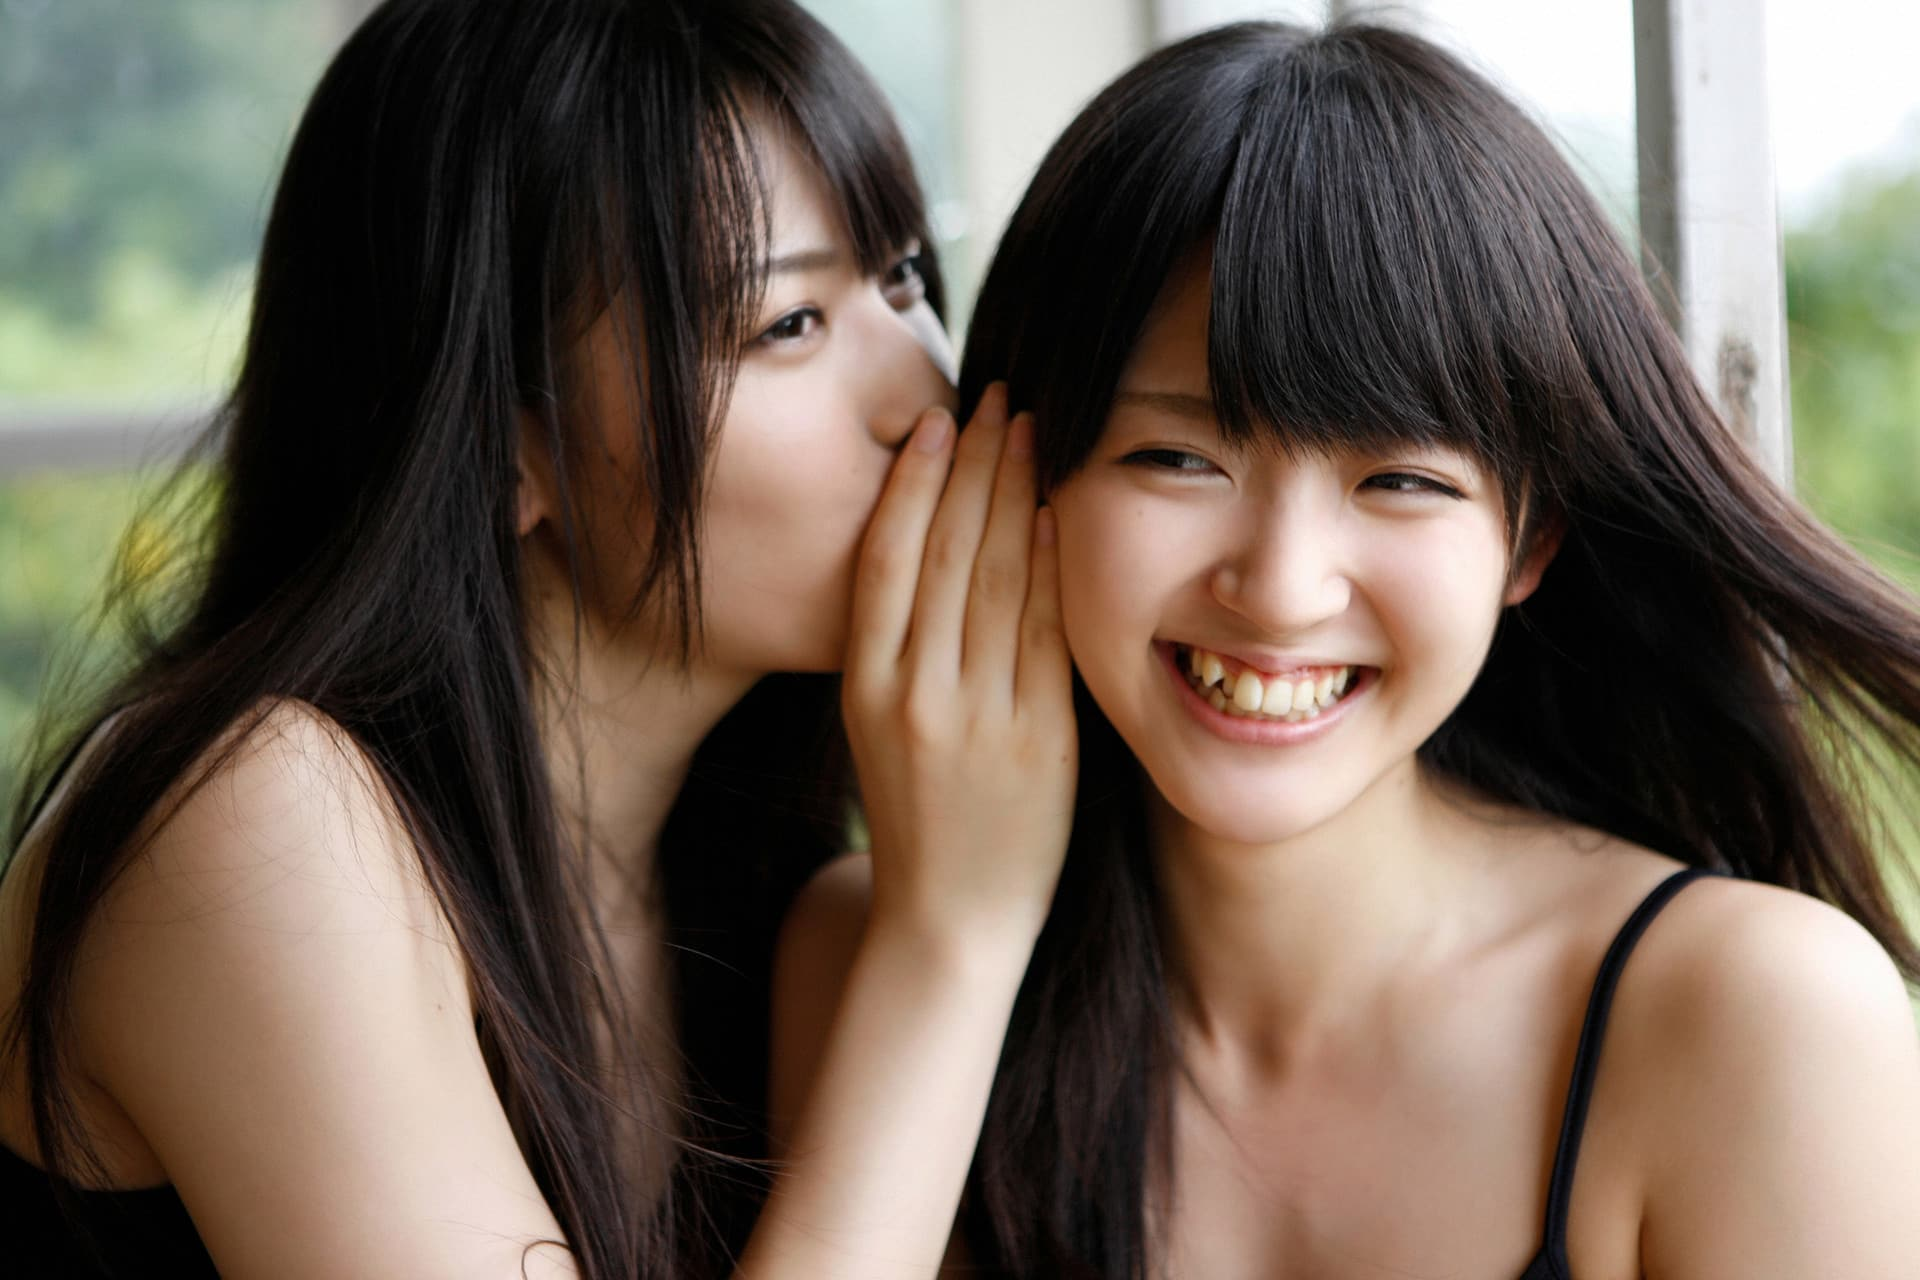 cumming single asian girls Find perfect chinese women or other asian ladies at our asia dating site asiandatecom with the help of our advanced search form women from all asian countries including china, japan, thailand, etc are waiting to meet you on asiandatecom.